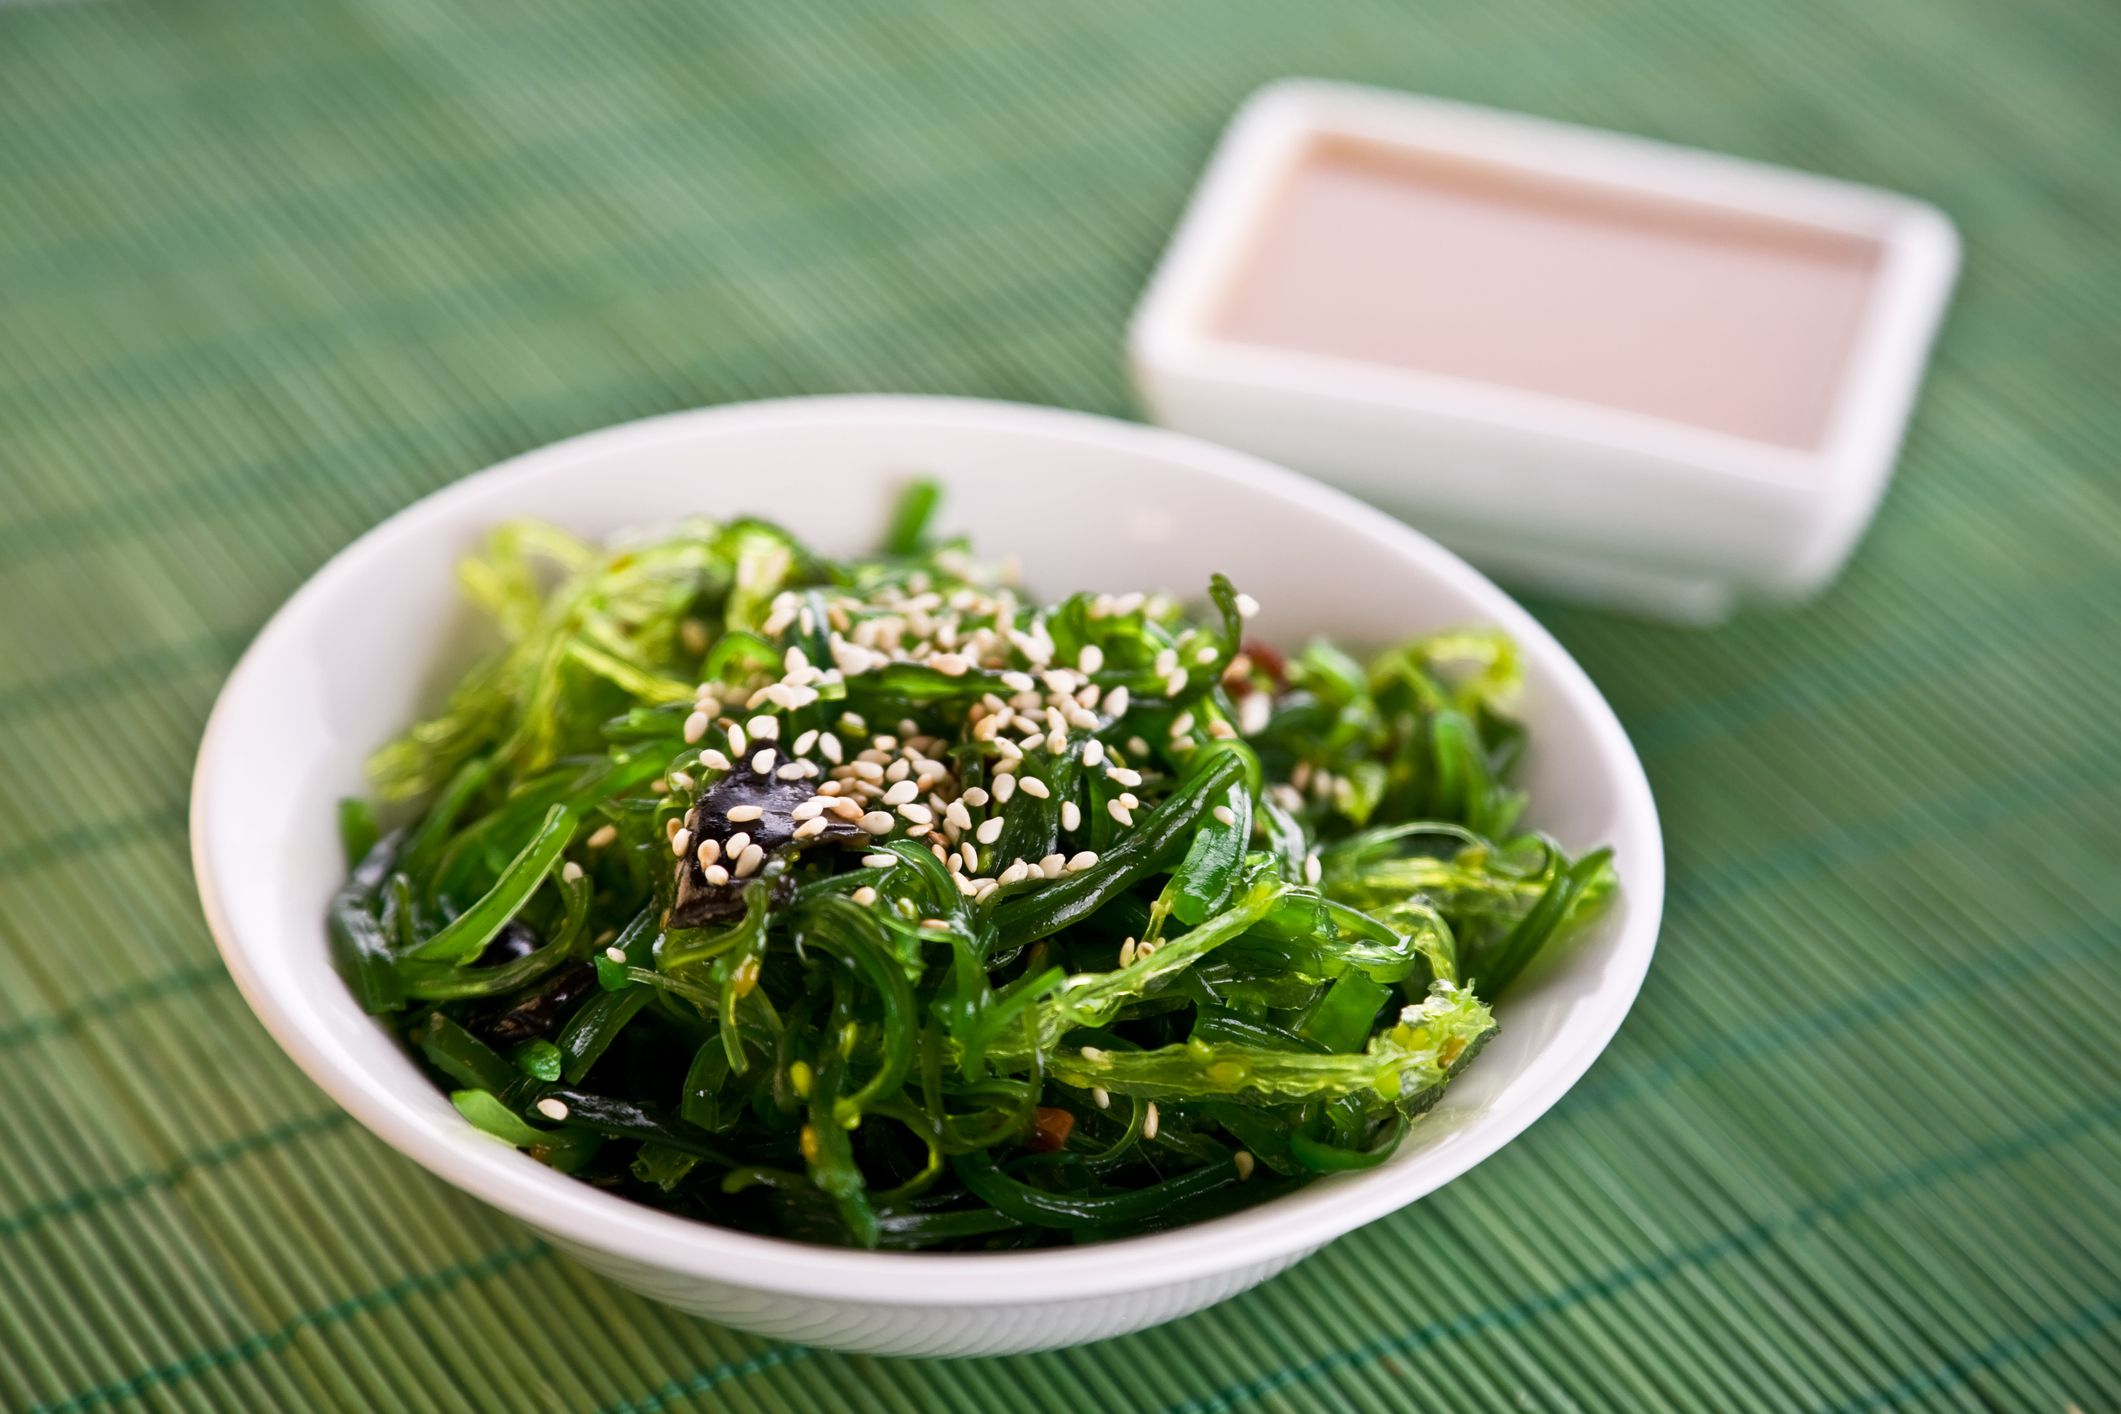 Calories, Carbs, and Health Benefits of Wakame